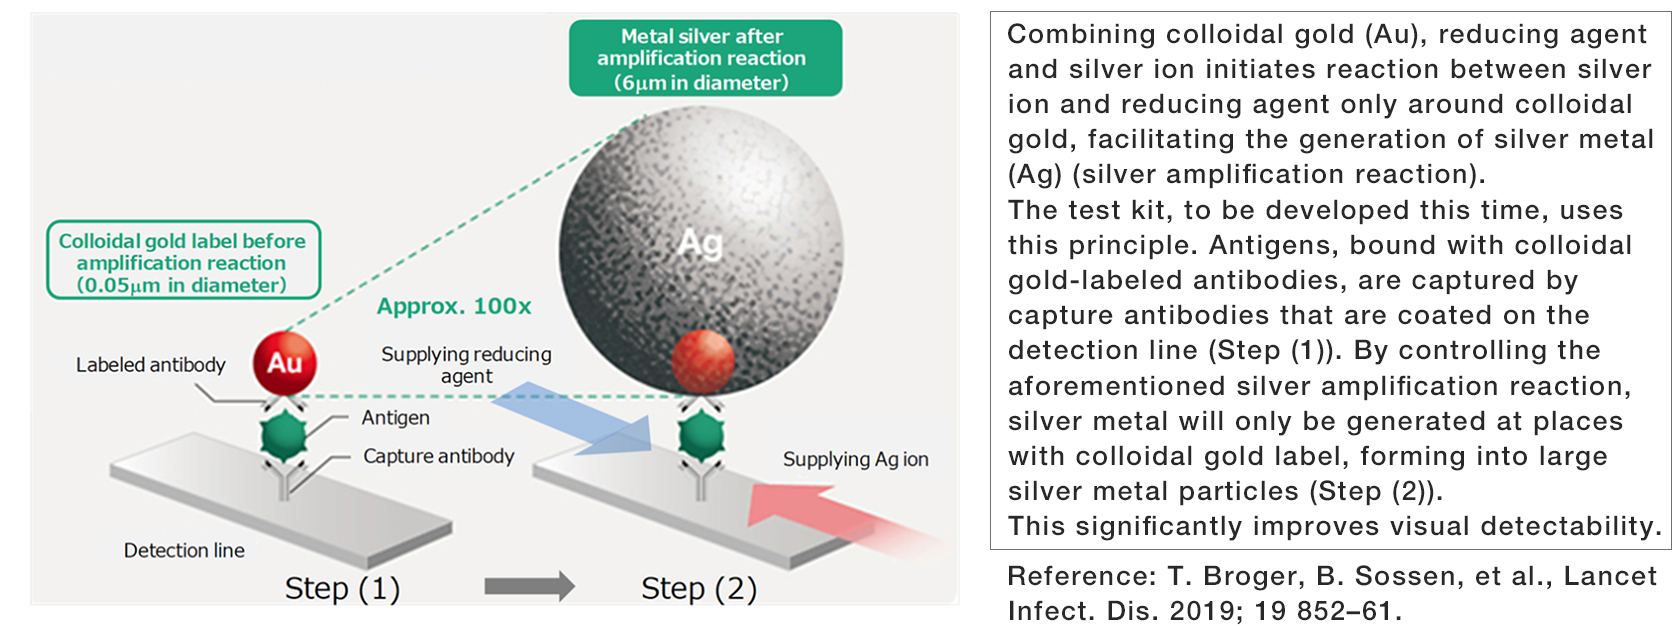 [image][The Silver Amplification Technology Applied in this Rapid Antigen Test]